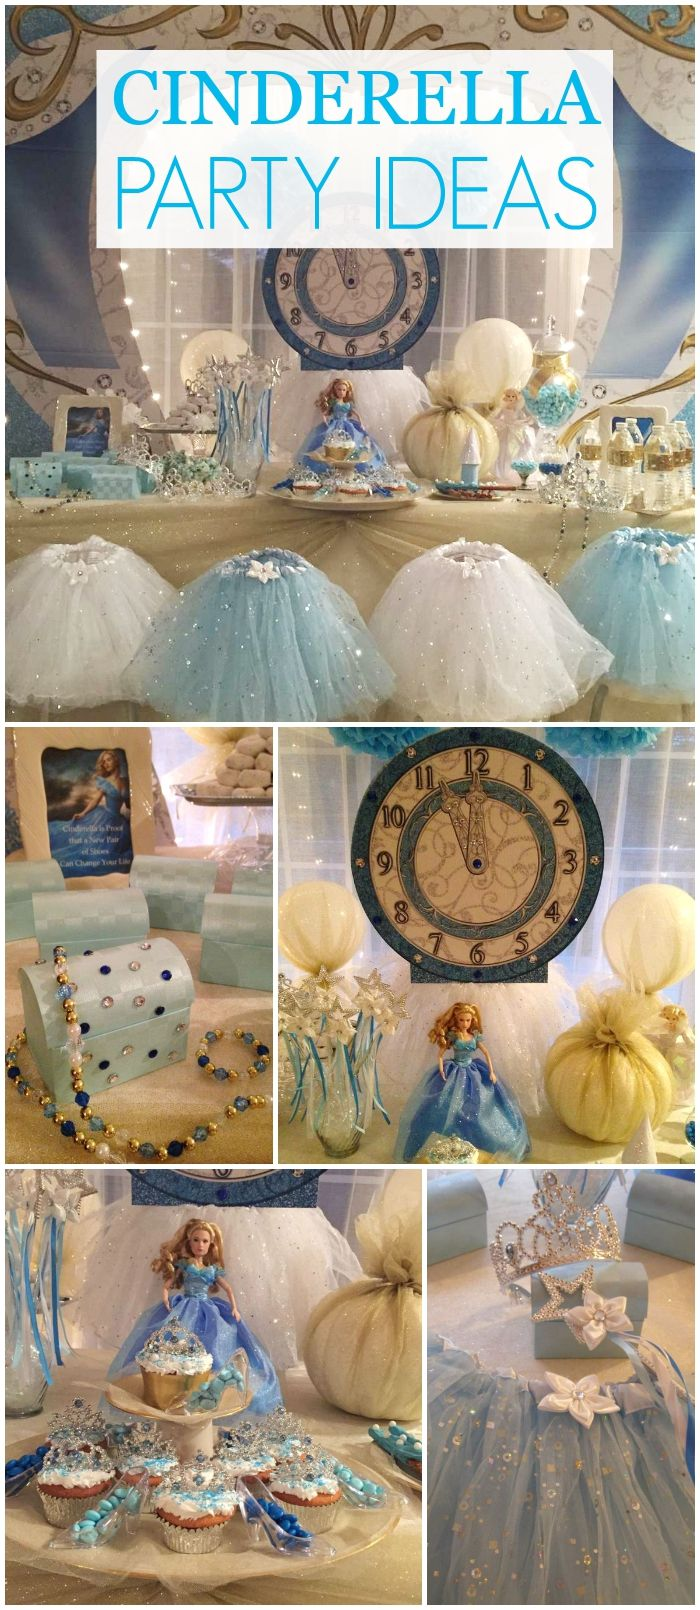 So many stunning details at this Cinderella party!